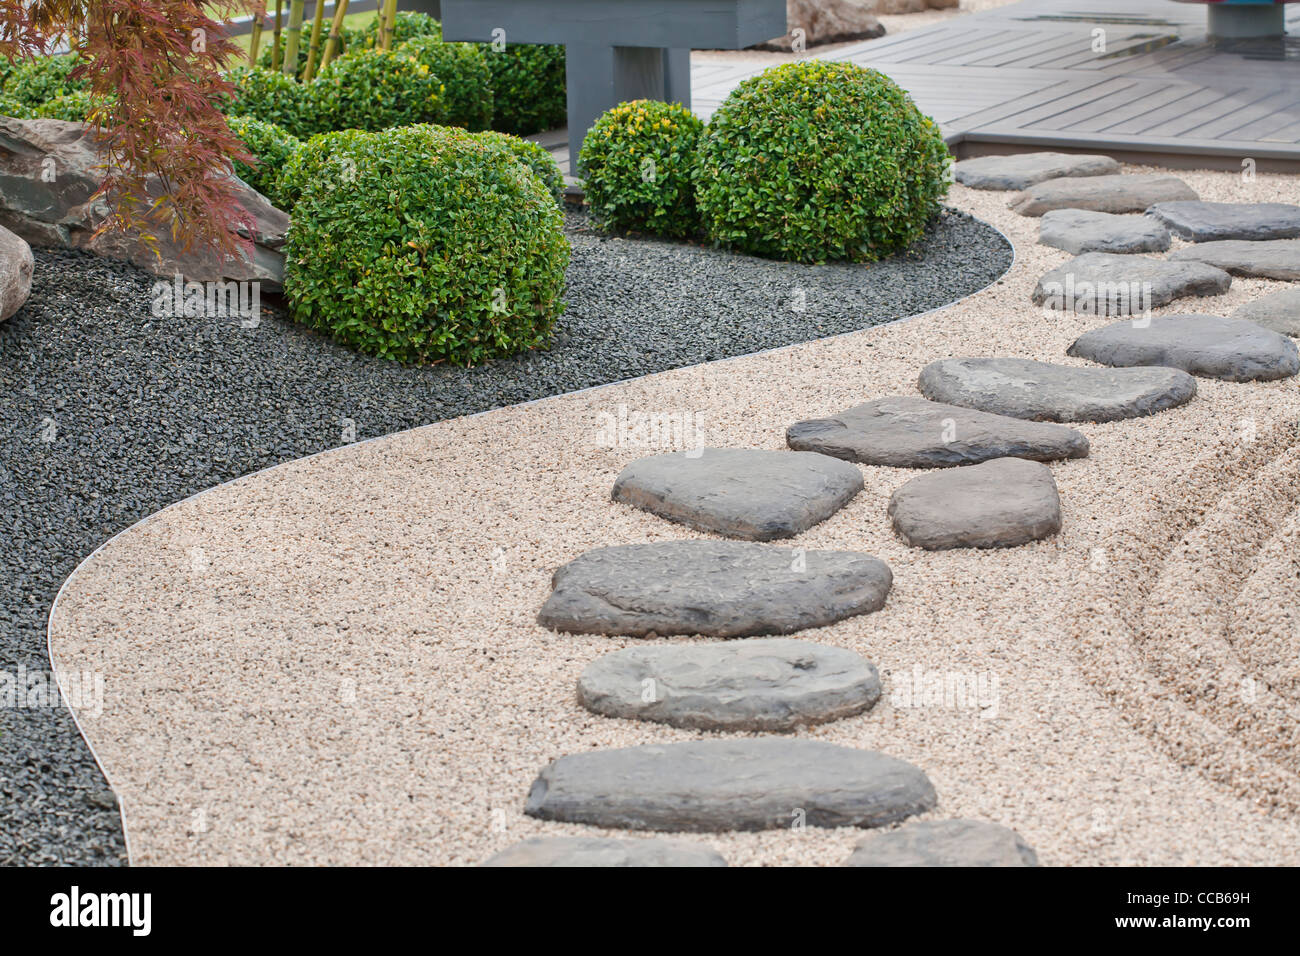 Japanese Garden Stones Steping stones on gravel pathway in japanese garden stock photo steping stones on gravel pathway in japanese garden workwithnaturefo